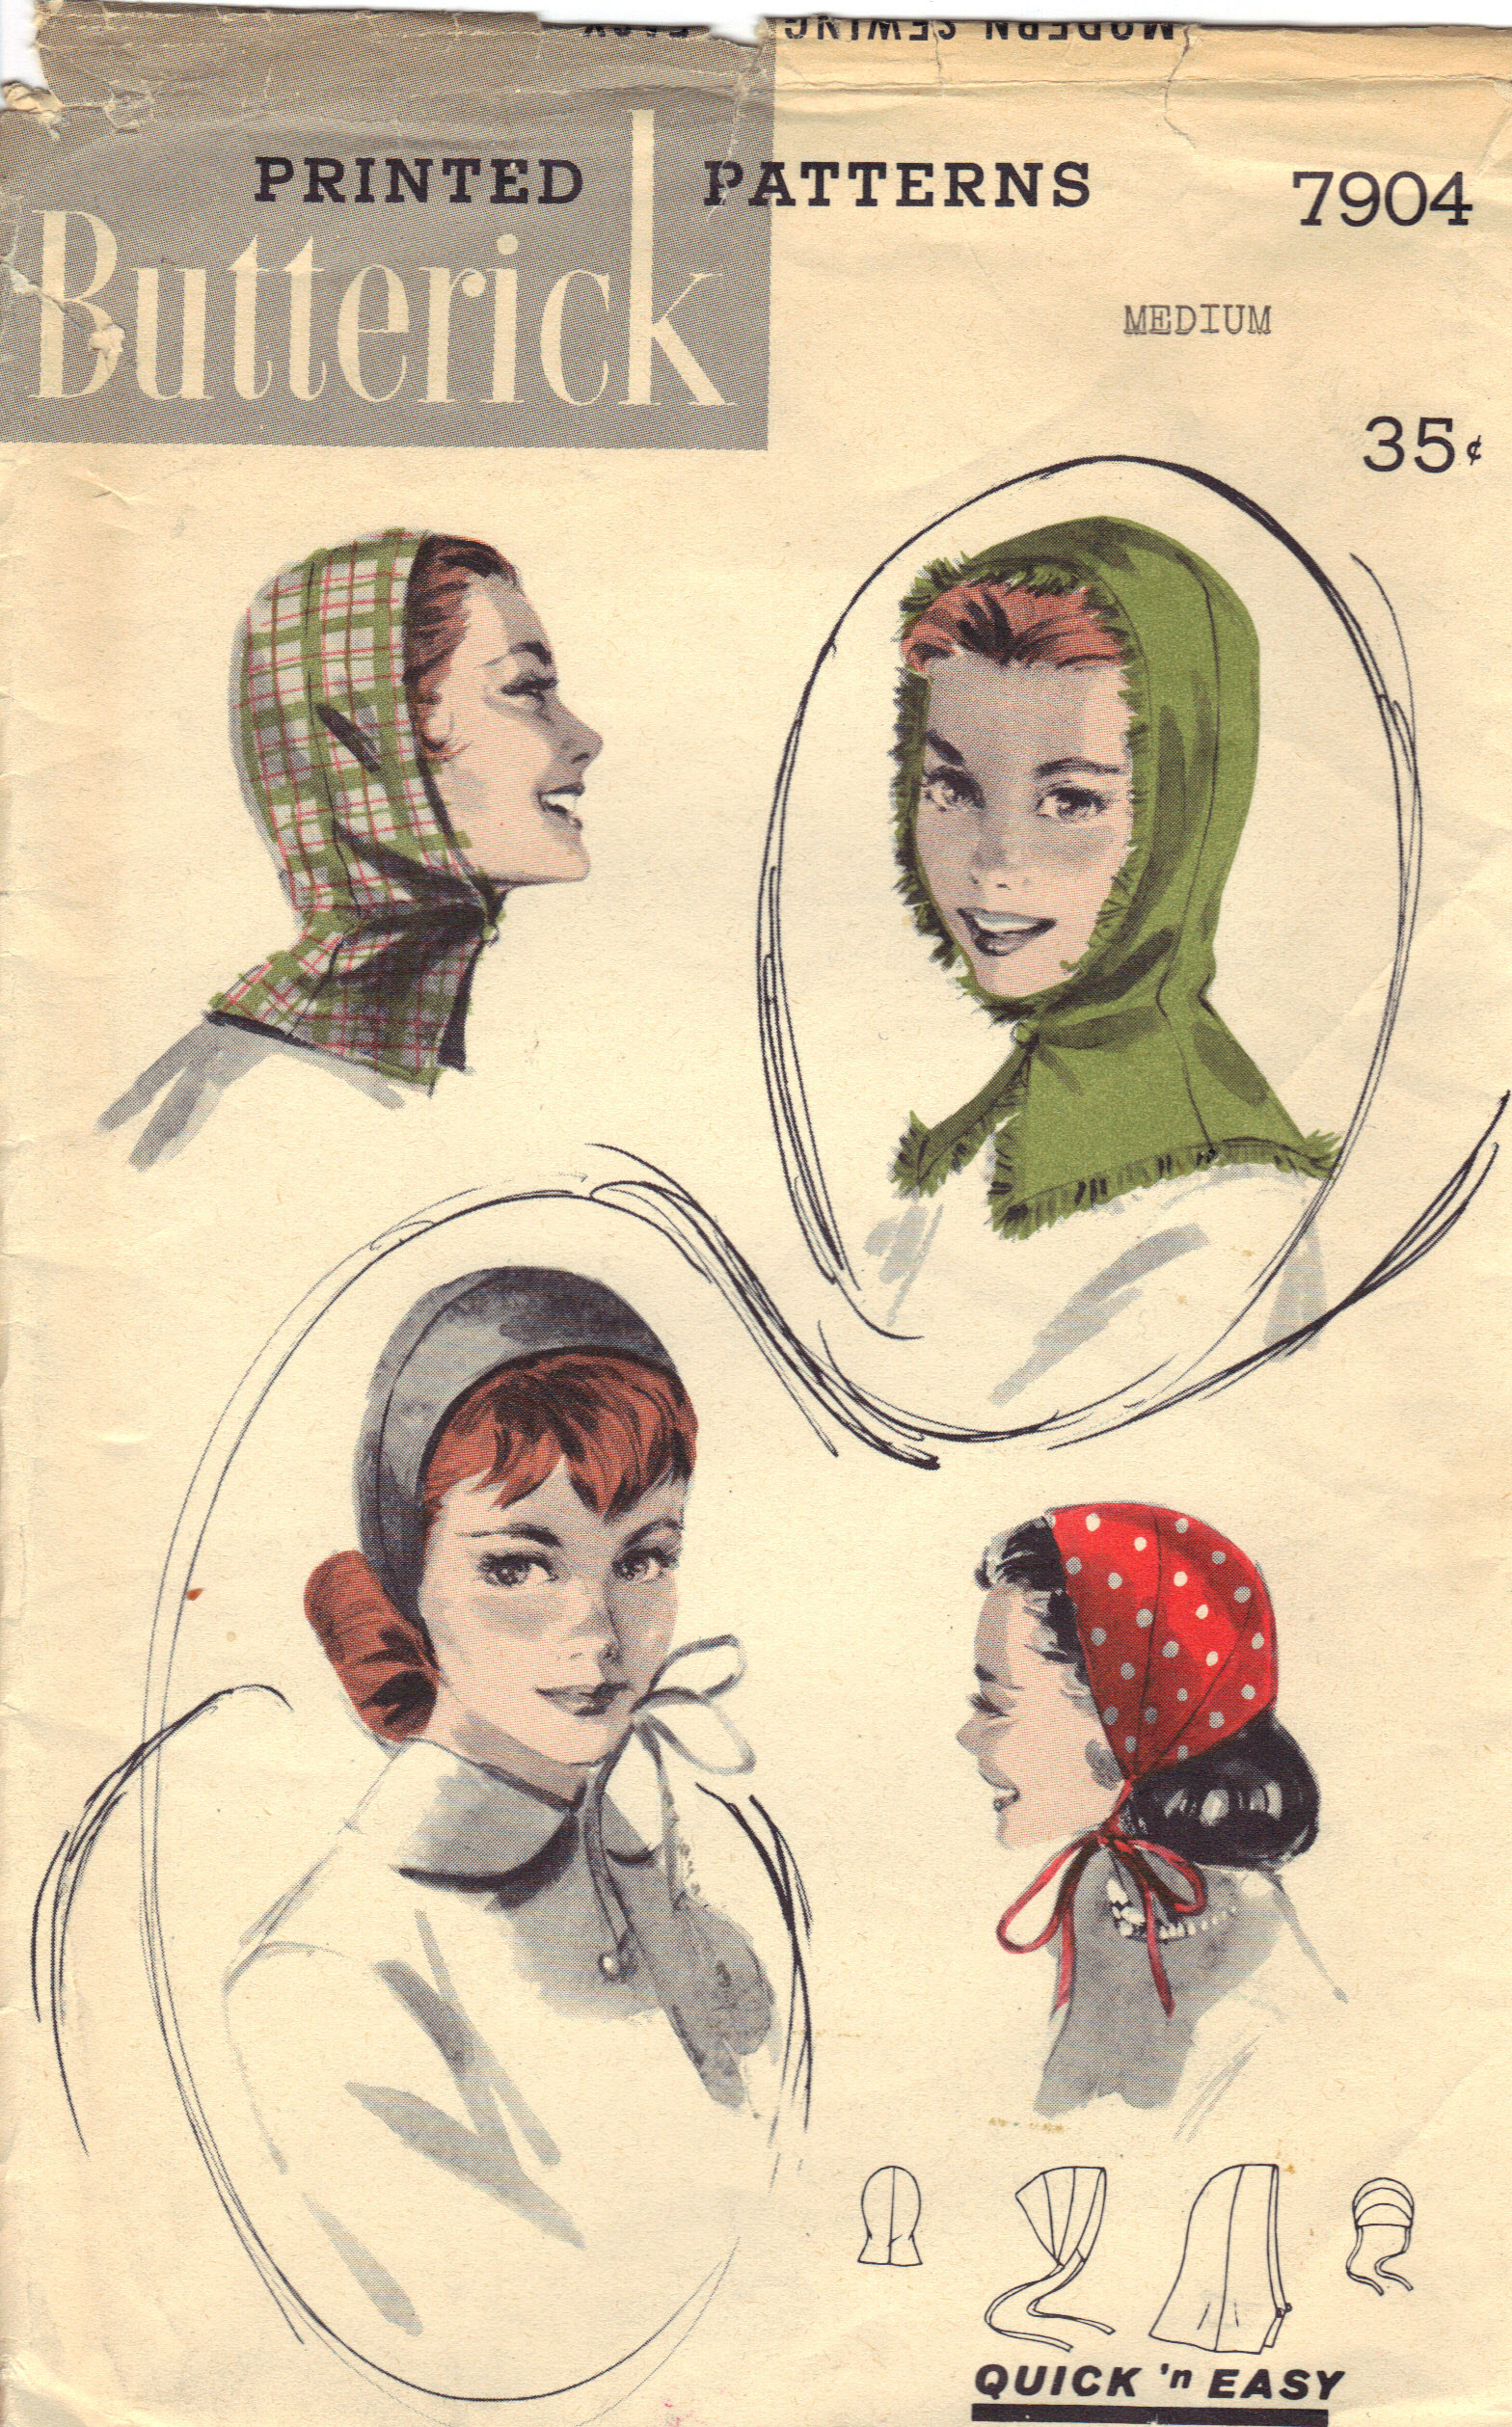 Butterick 7904 | Vintage Sewing Patterns | FANDOM powered by Wikia